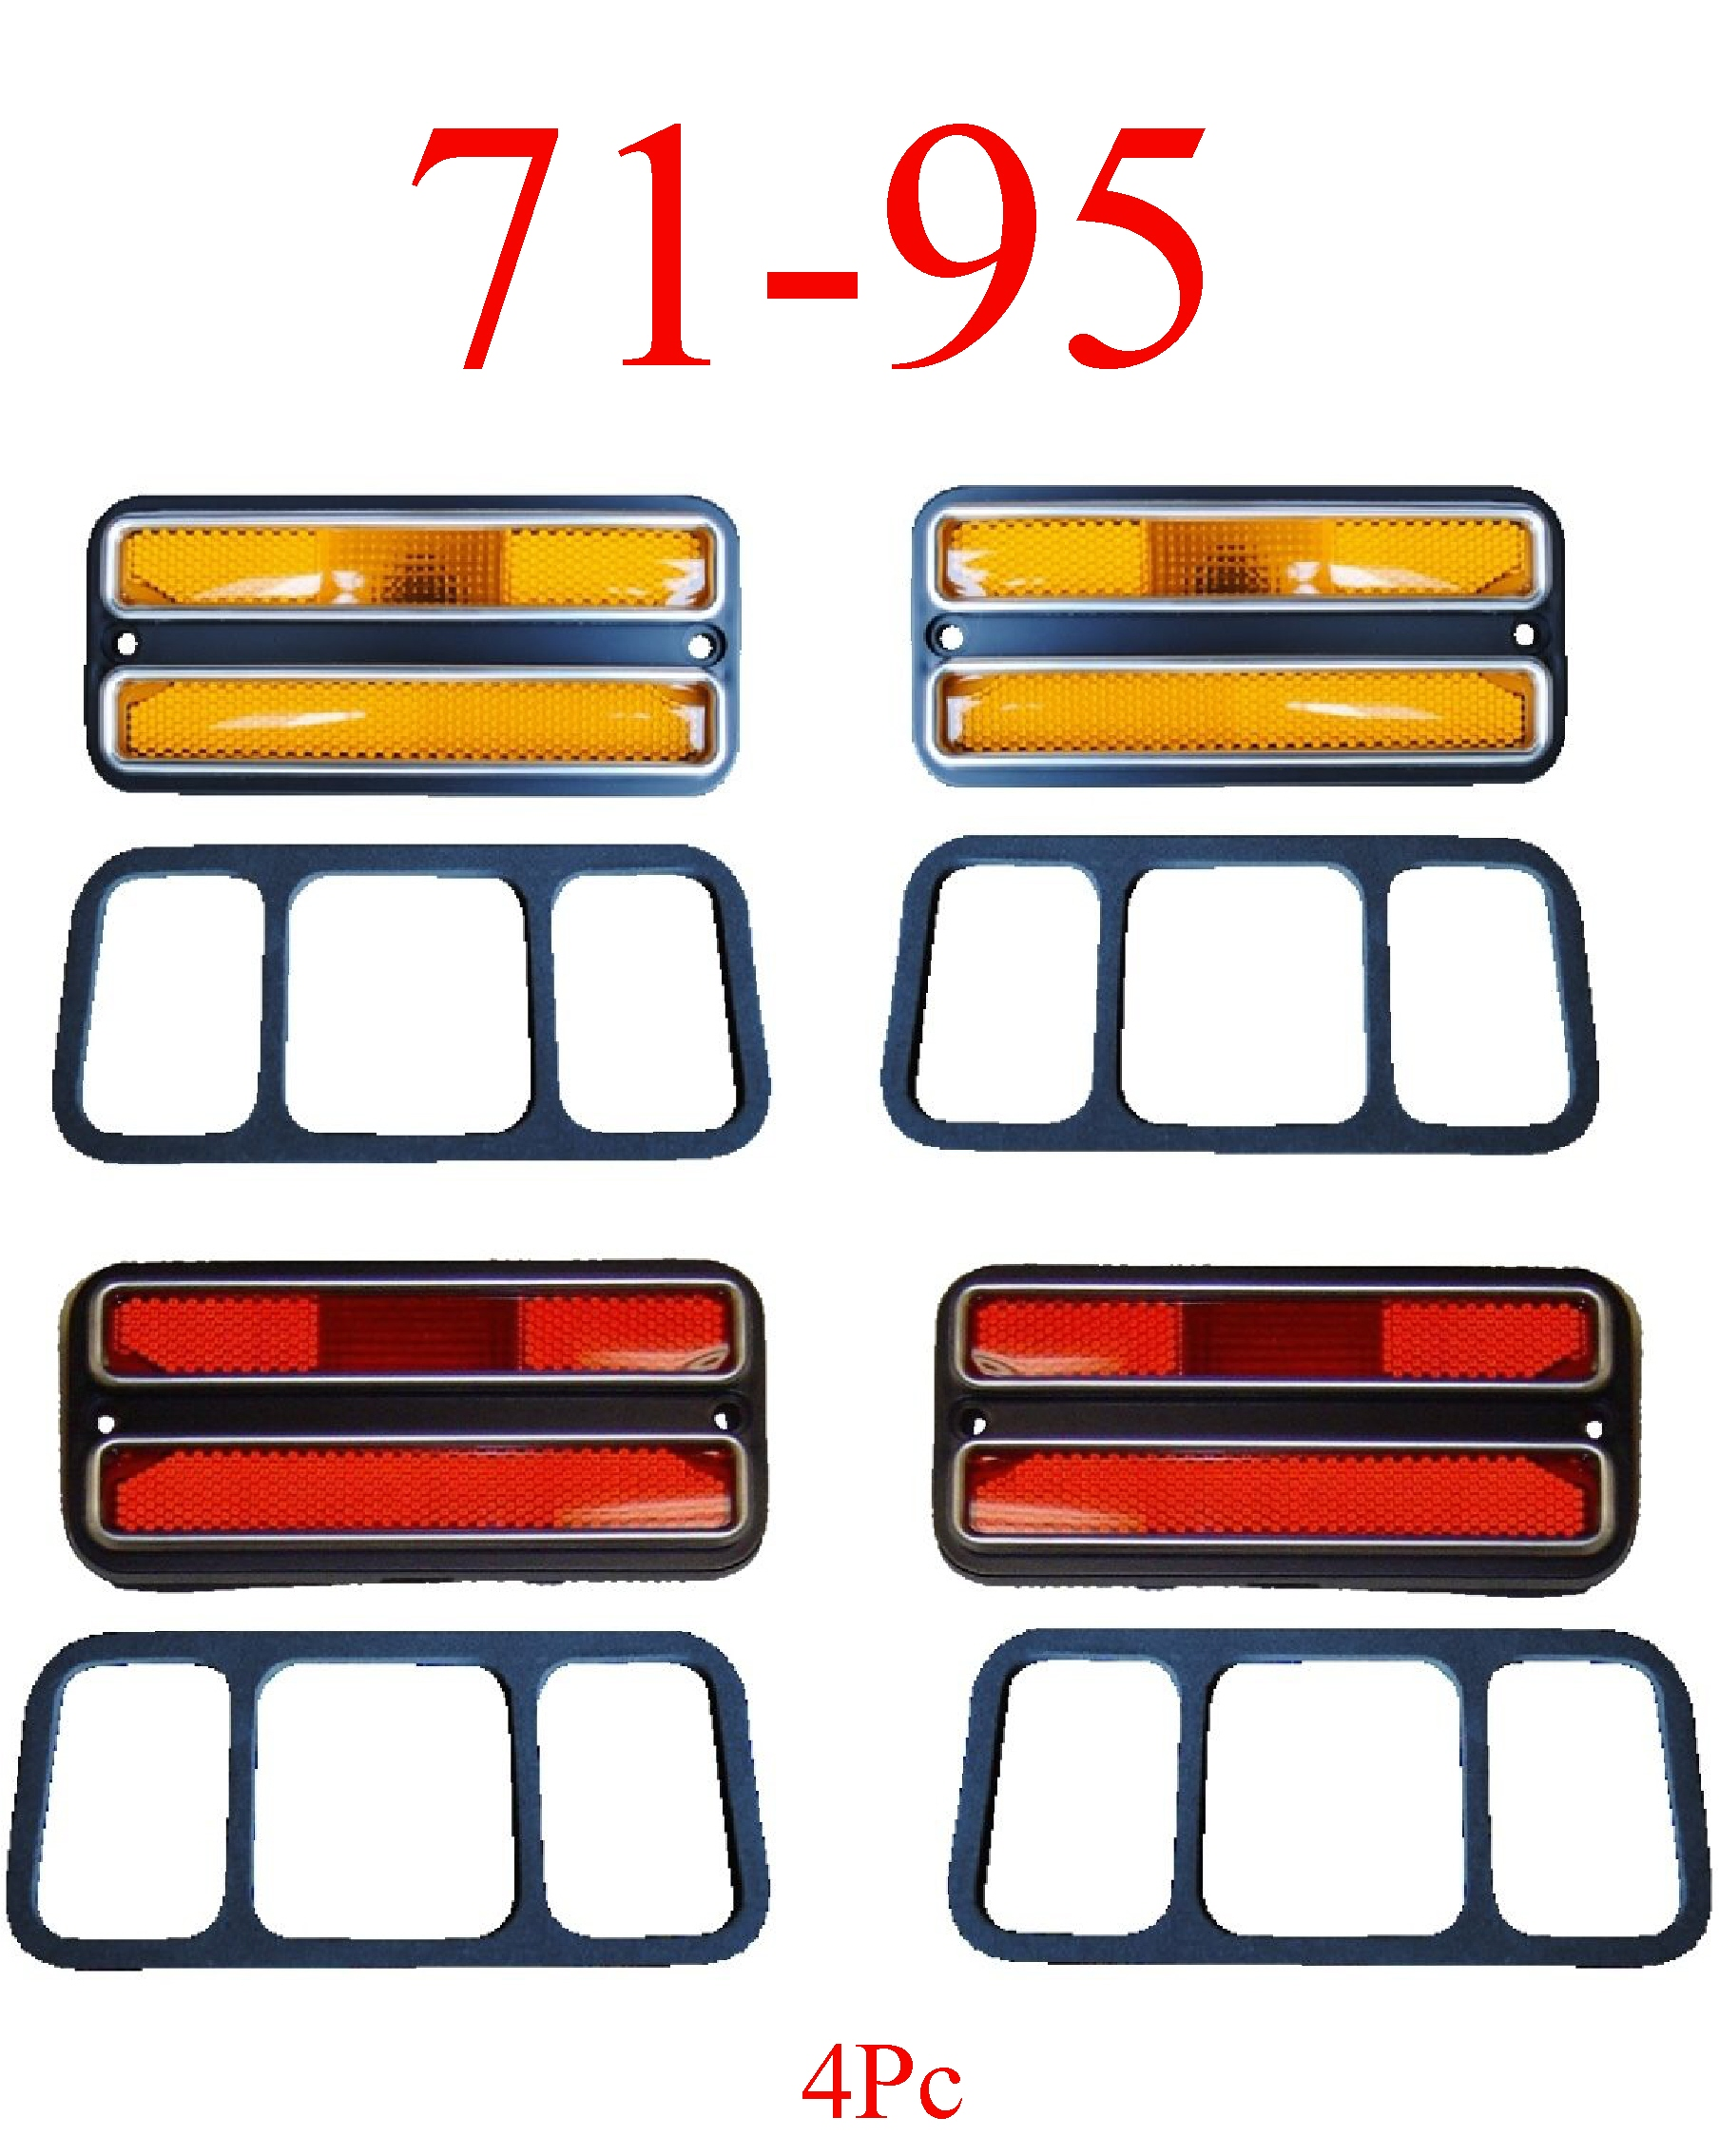 71-95 Chevy Van 4Pc Deluxe Amber & Red Side Lights